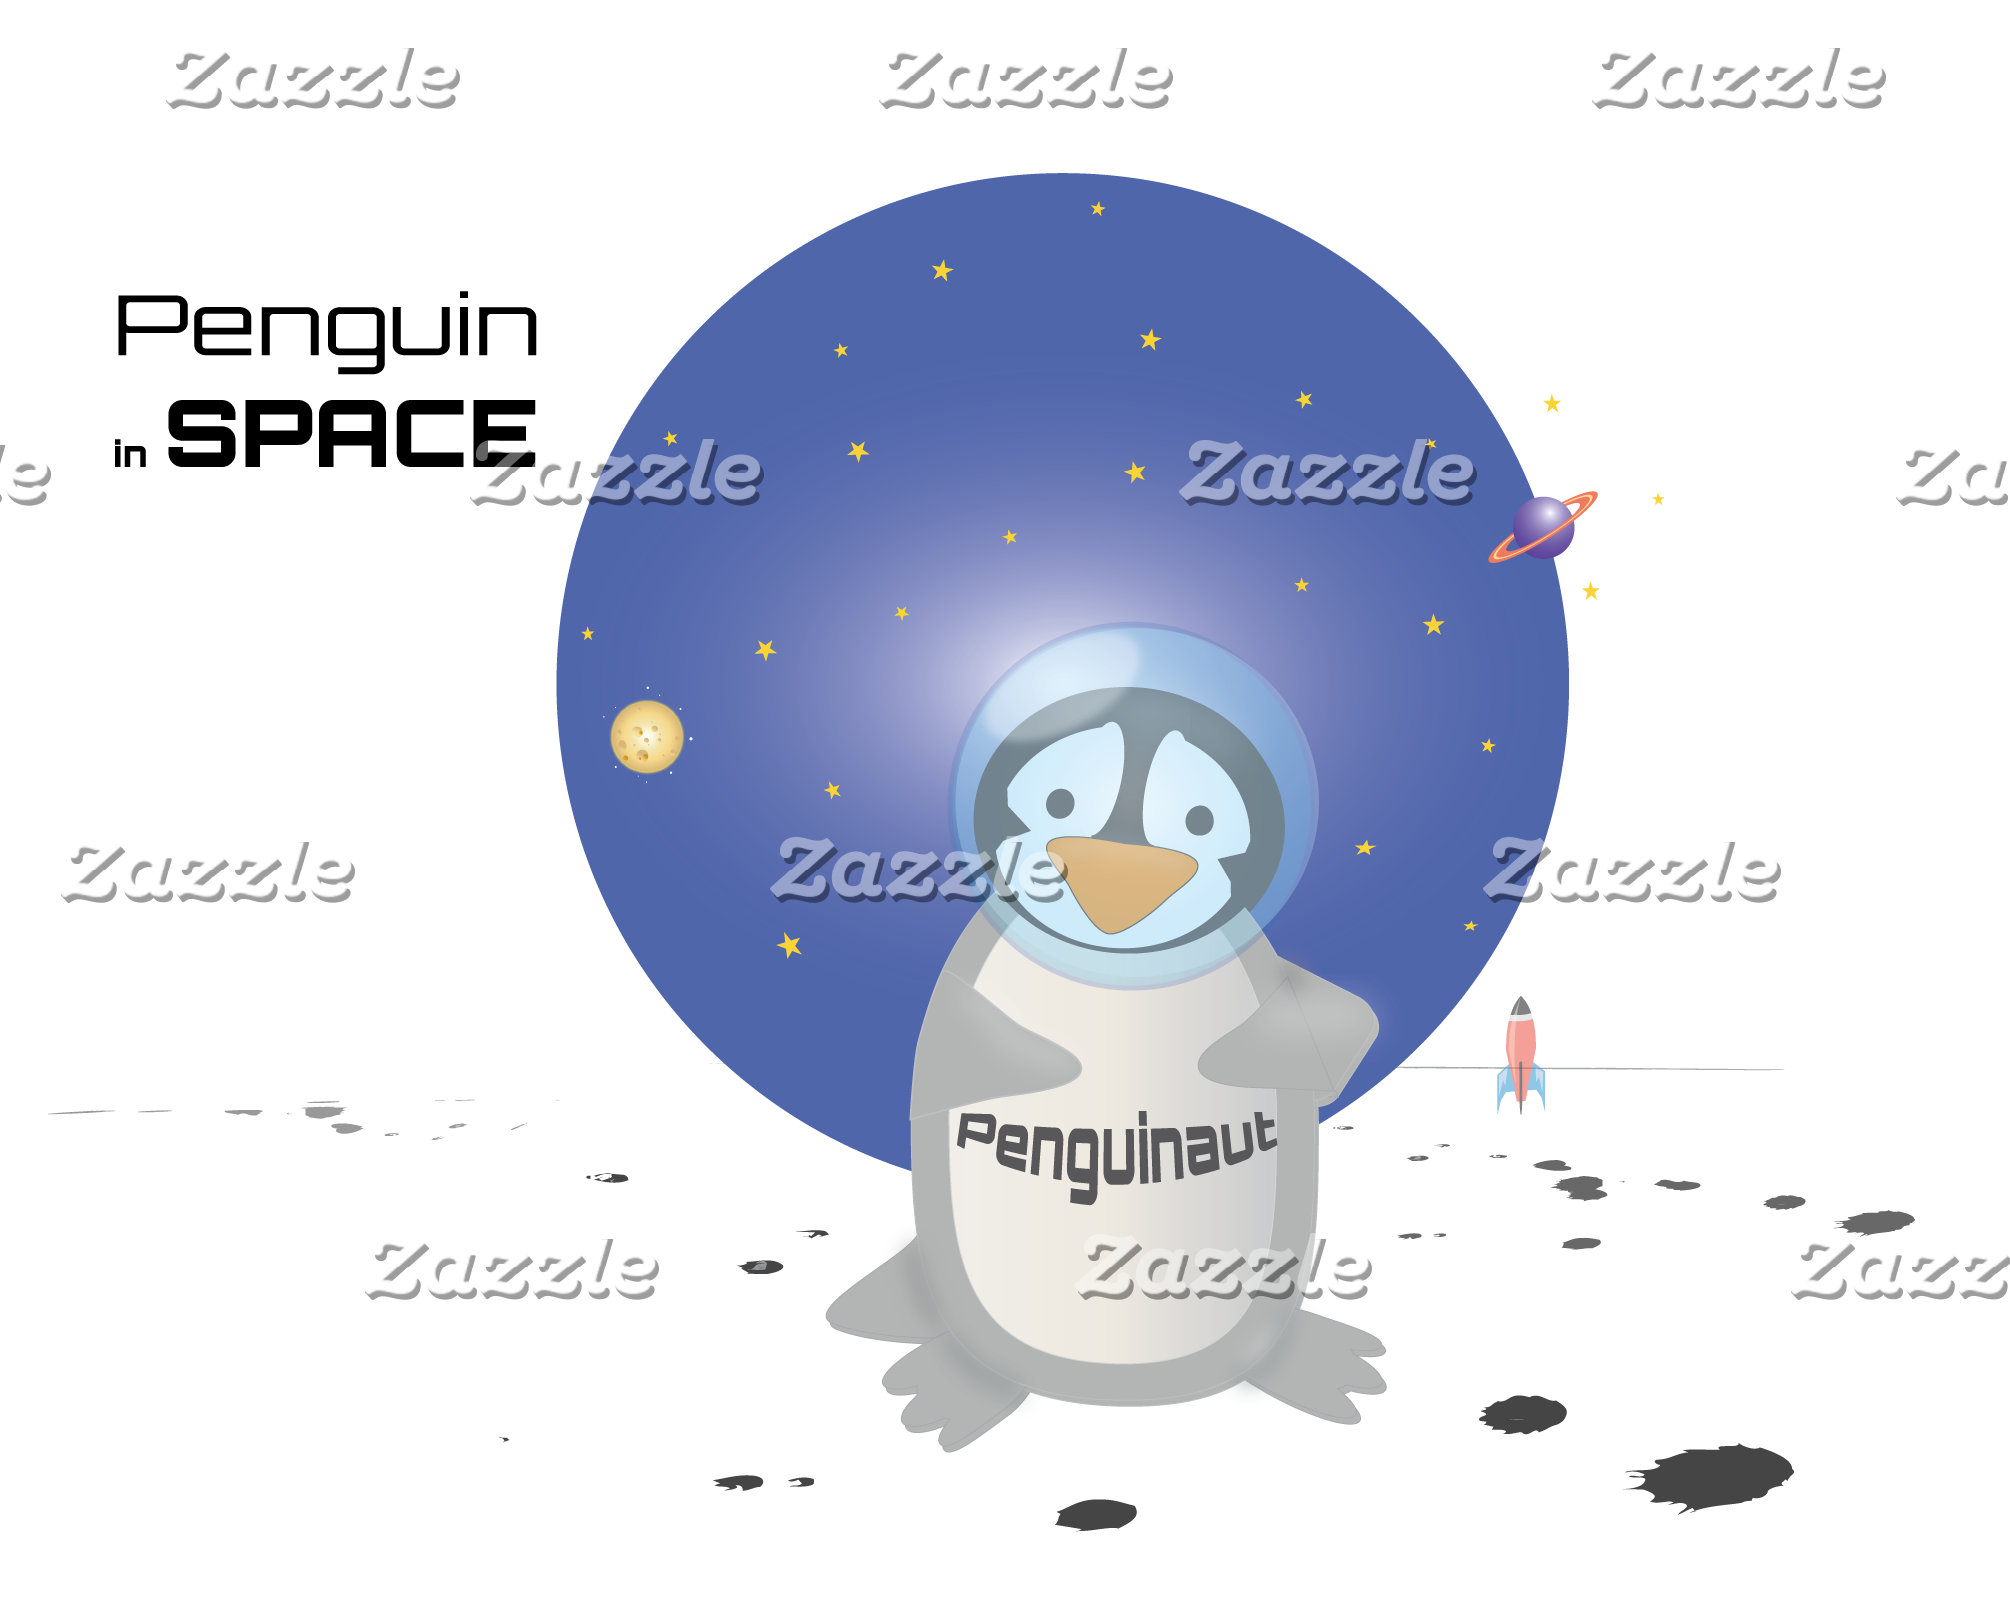 Penguins in Space